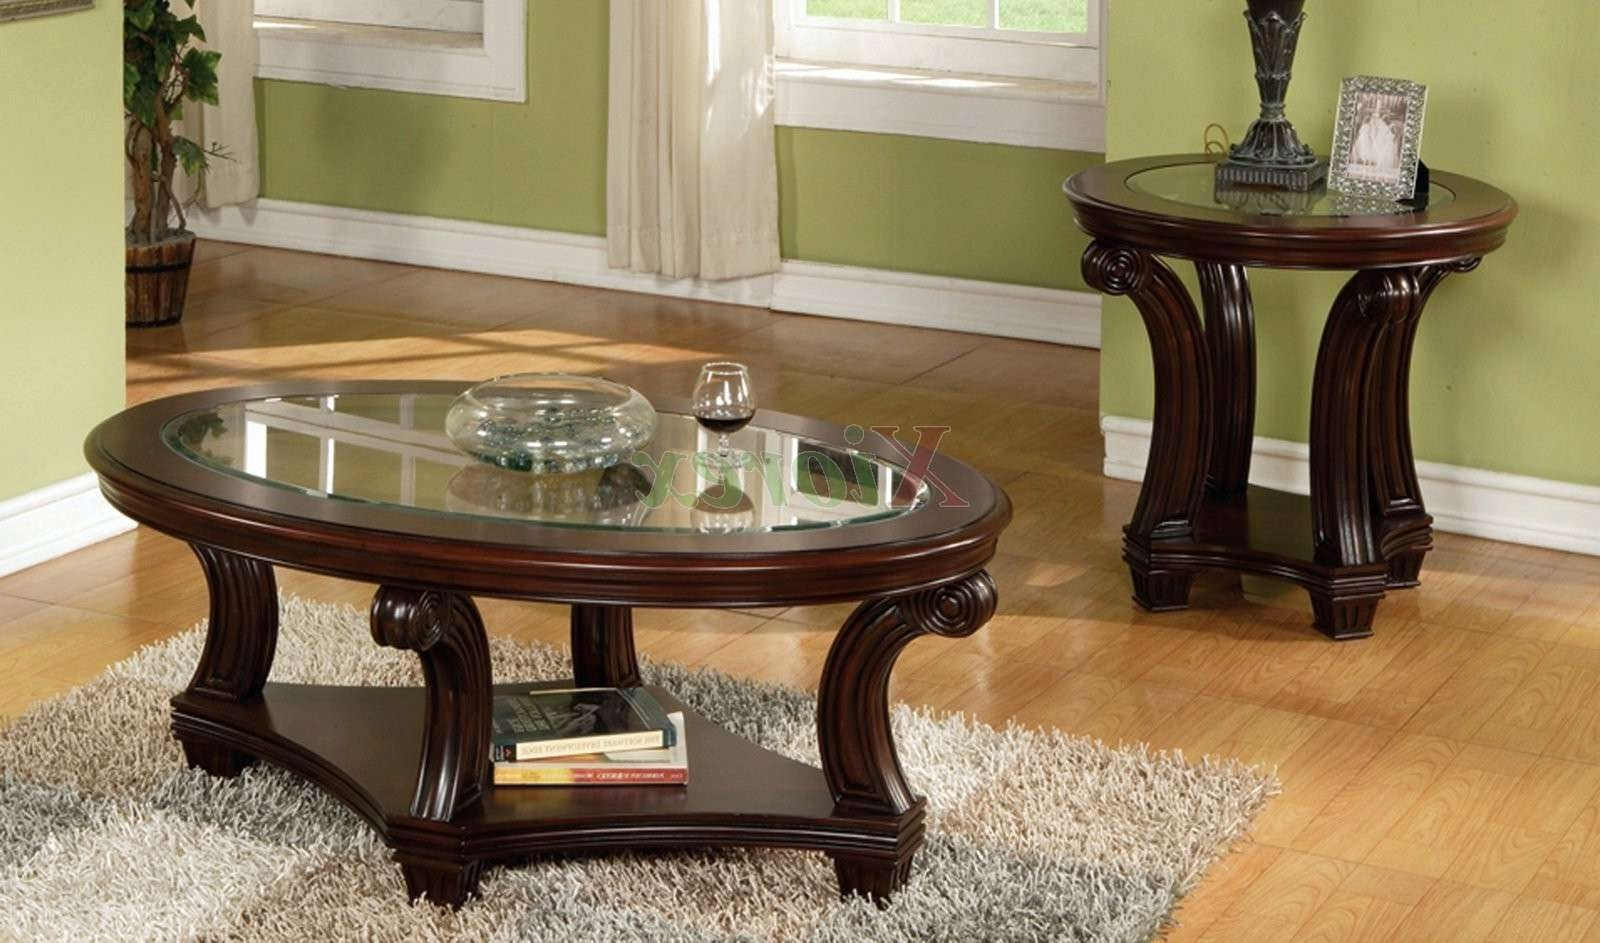 Fashionable Coffee Table With Matching End Tables Inside Glass Coffee Carafe Wood And Glass Coffee Table Sets Formal Dining (View 7 of 20)